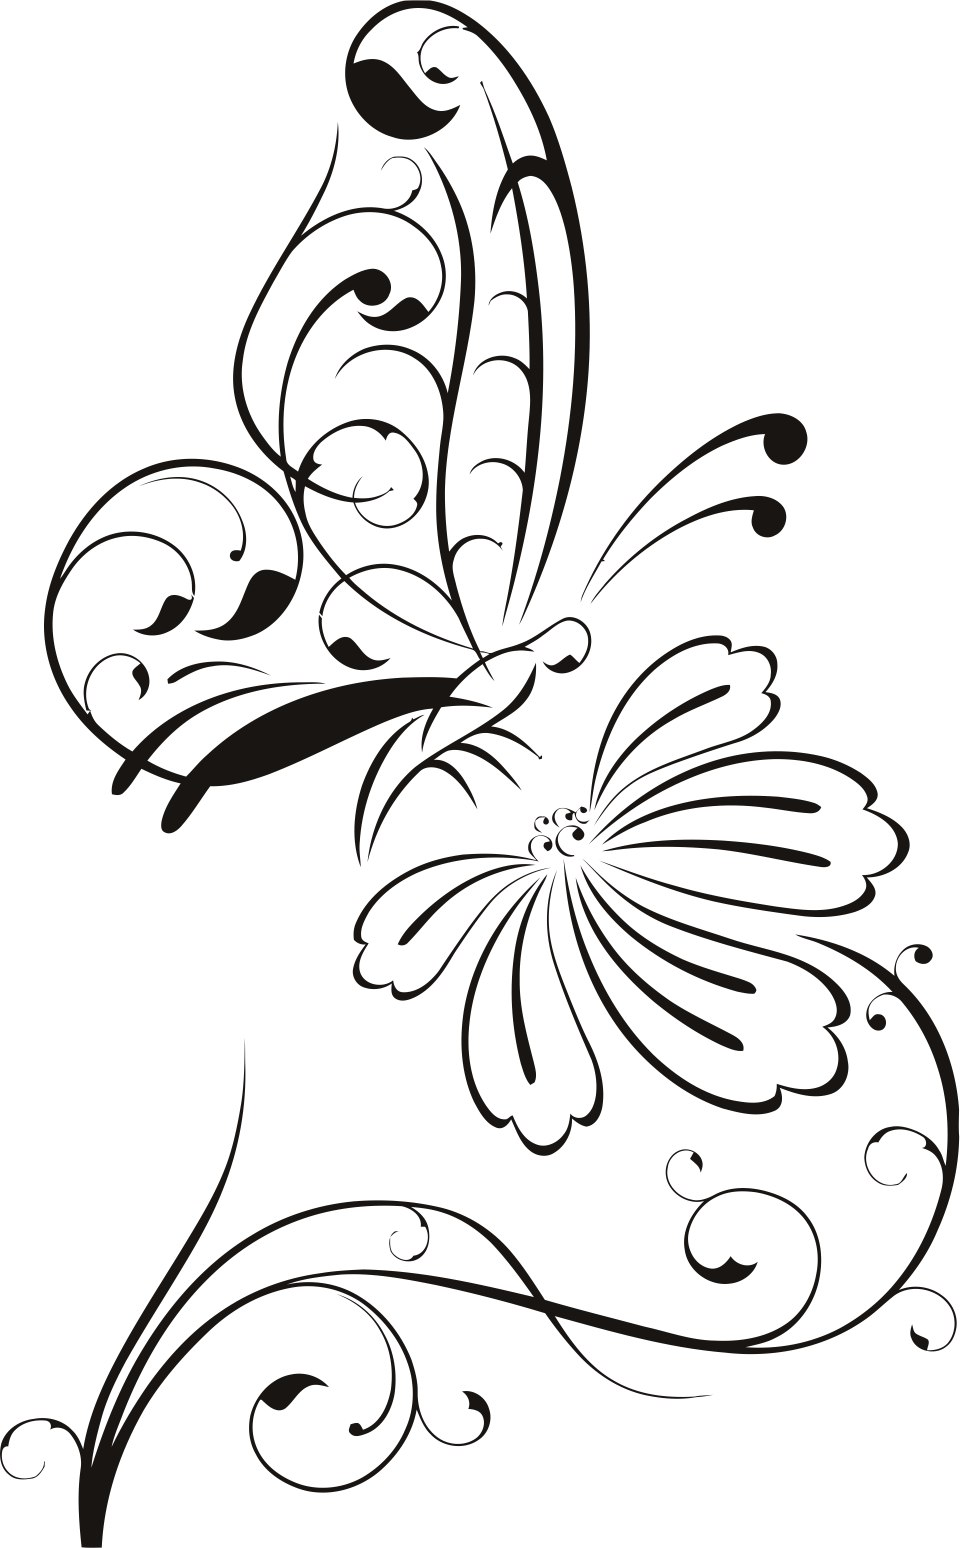 Home Decor Butterfly And Flower Free CDR Vectors Art